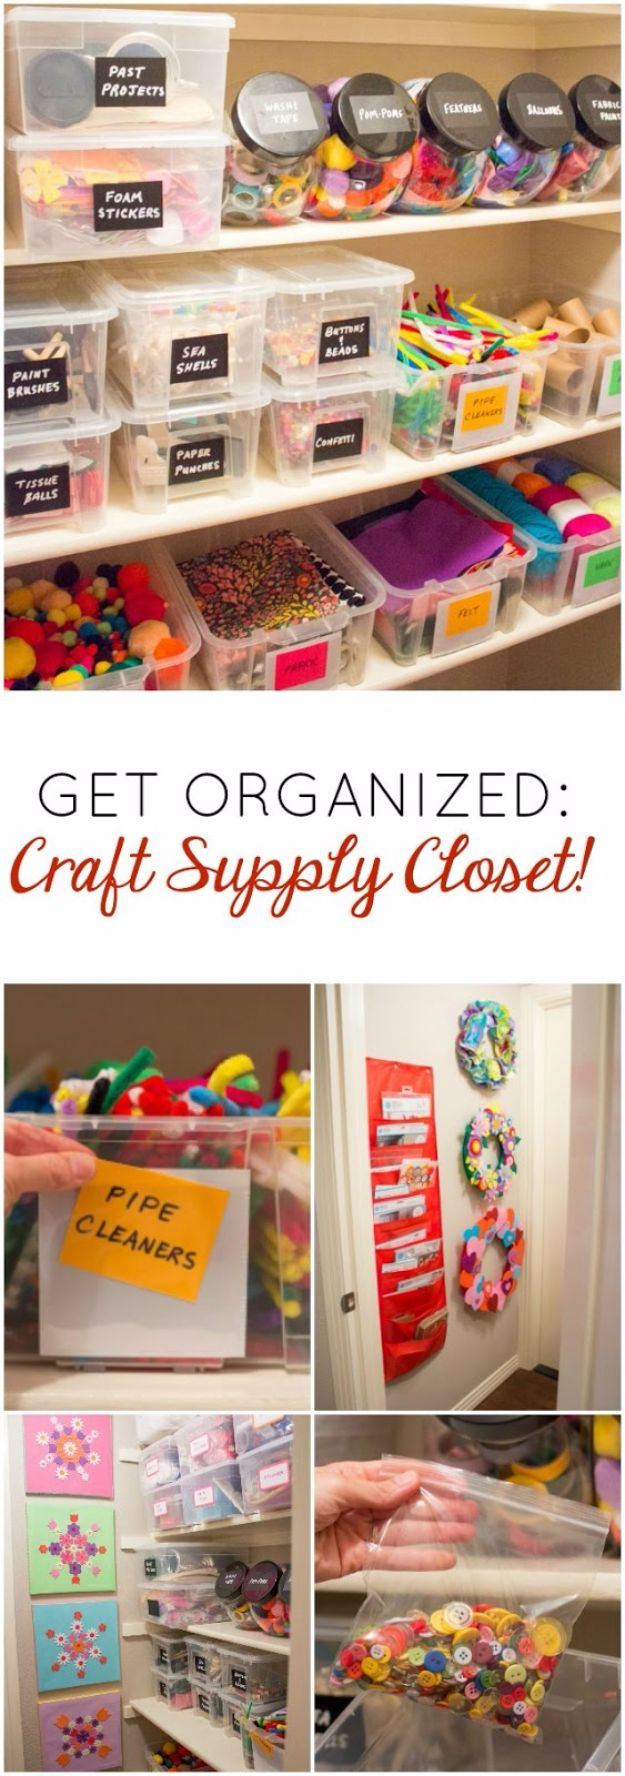 DIY Craft Room Ideas and Craft Room Organization Projects - Craft Supply Closet - Cool Ideas for Do It Yourself Craft Storage, Craft Room Decor and Organizing Project Ideas - fabric, paper, pens, creative tools, crafts supplies, shelves and sewing notions